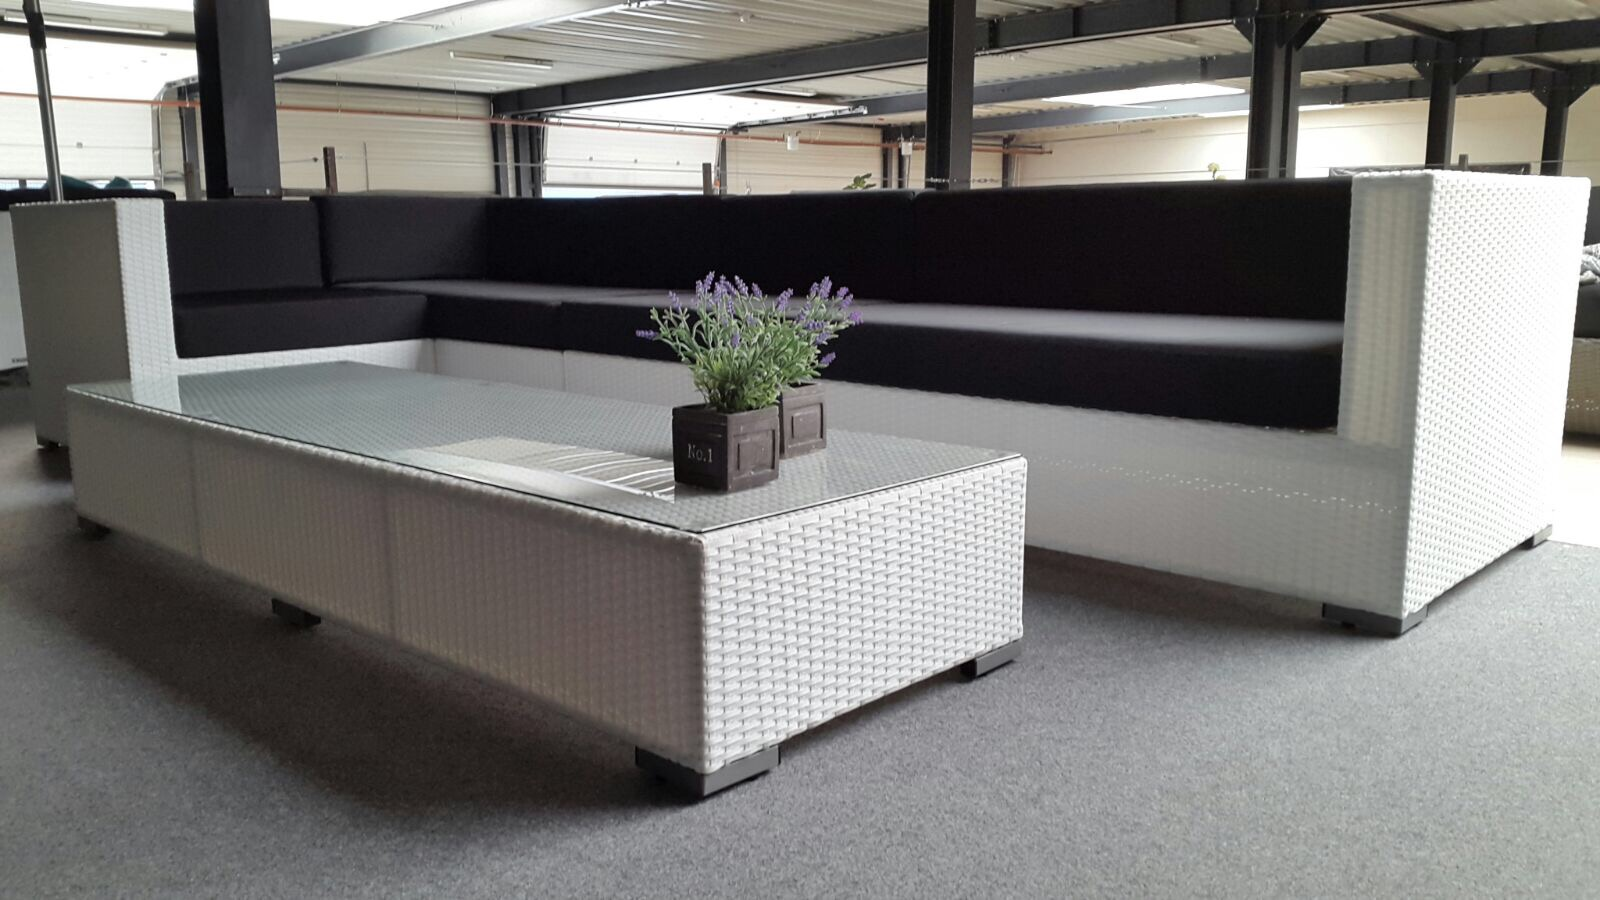 Lounge Bank Tuin : Loungeset tuin wit bank tuin great loungeset lounche bank terras